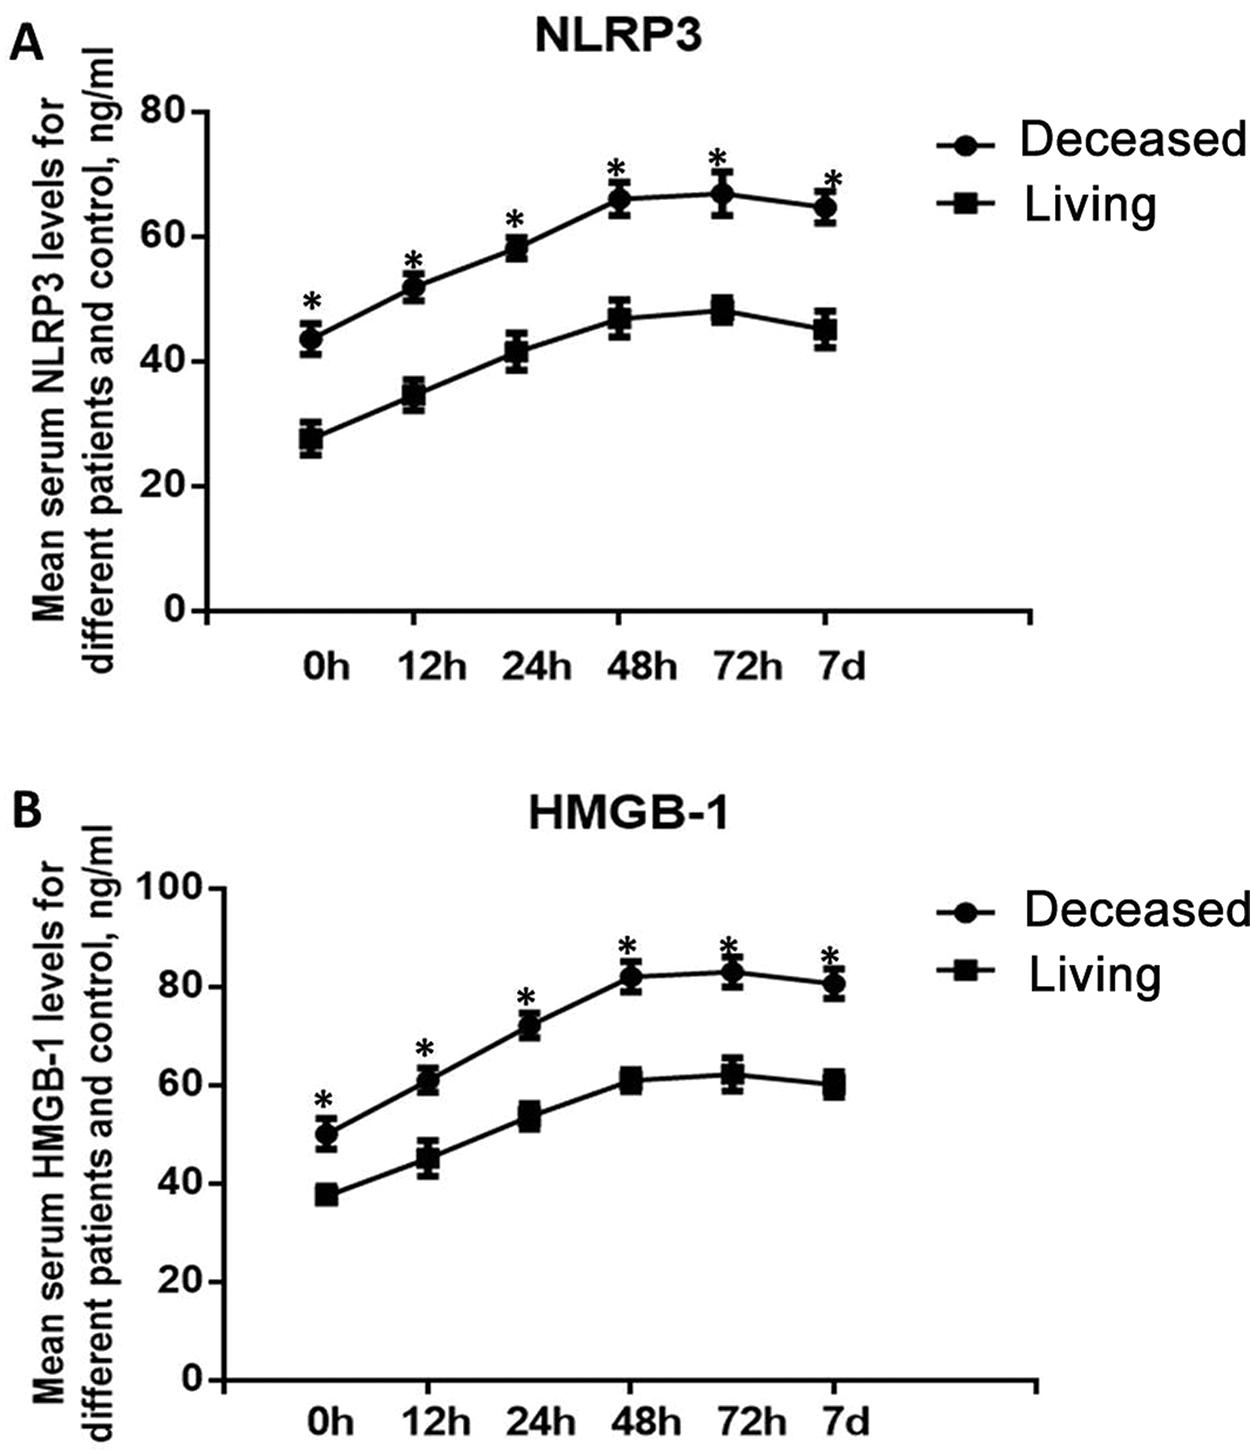 Dynamic changes in the serum levels of NLRP3 and HMGB-1 in deceased and living patients. A. Dynamic changes in the level of NLRP3; B. Dynamic changes in the level of HMGB-1. *p<0.05, compared with the living patients.